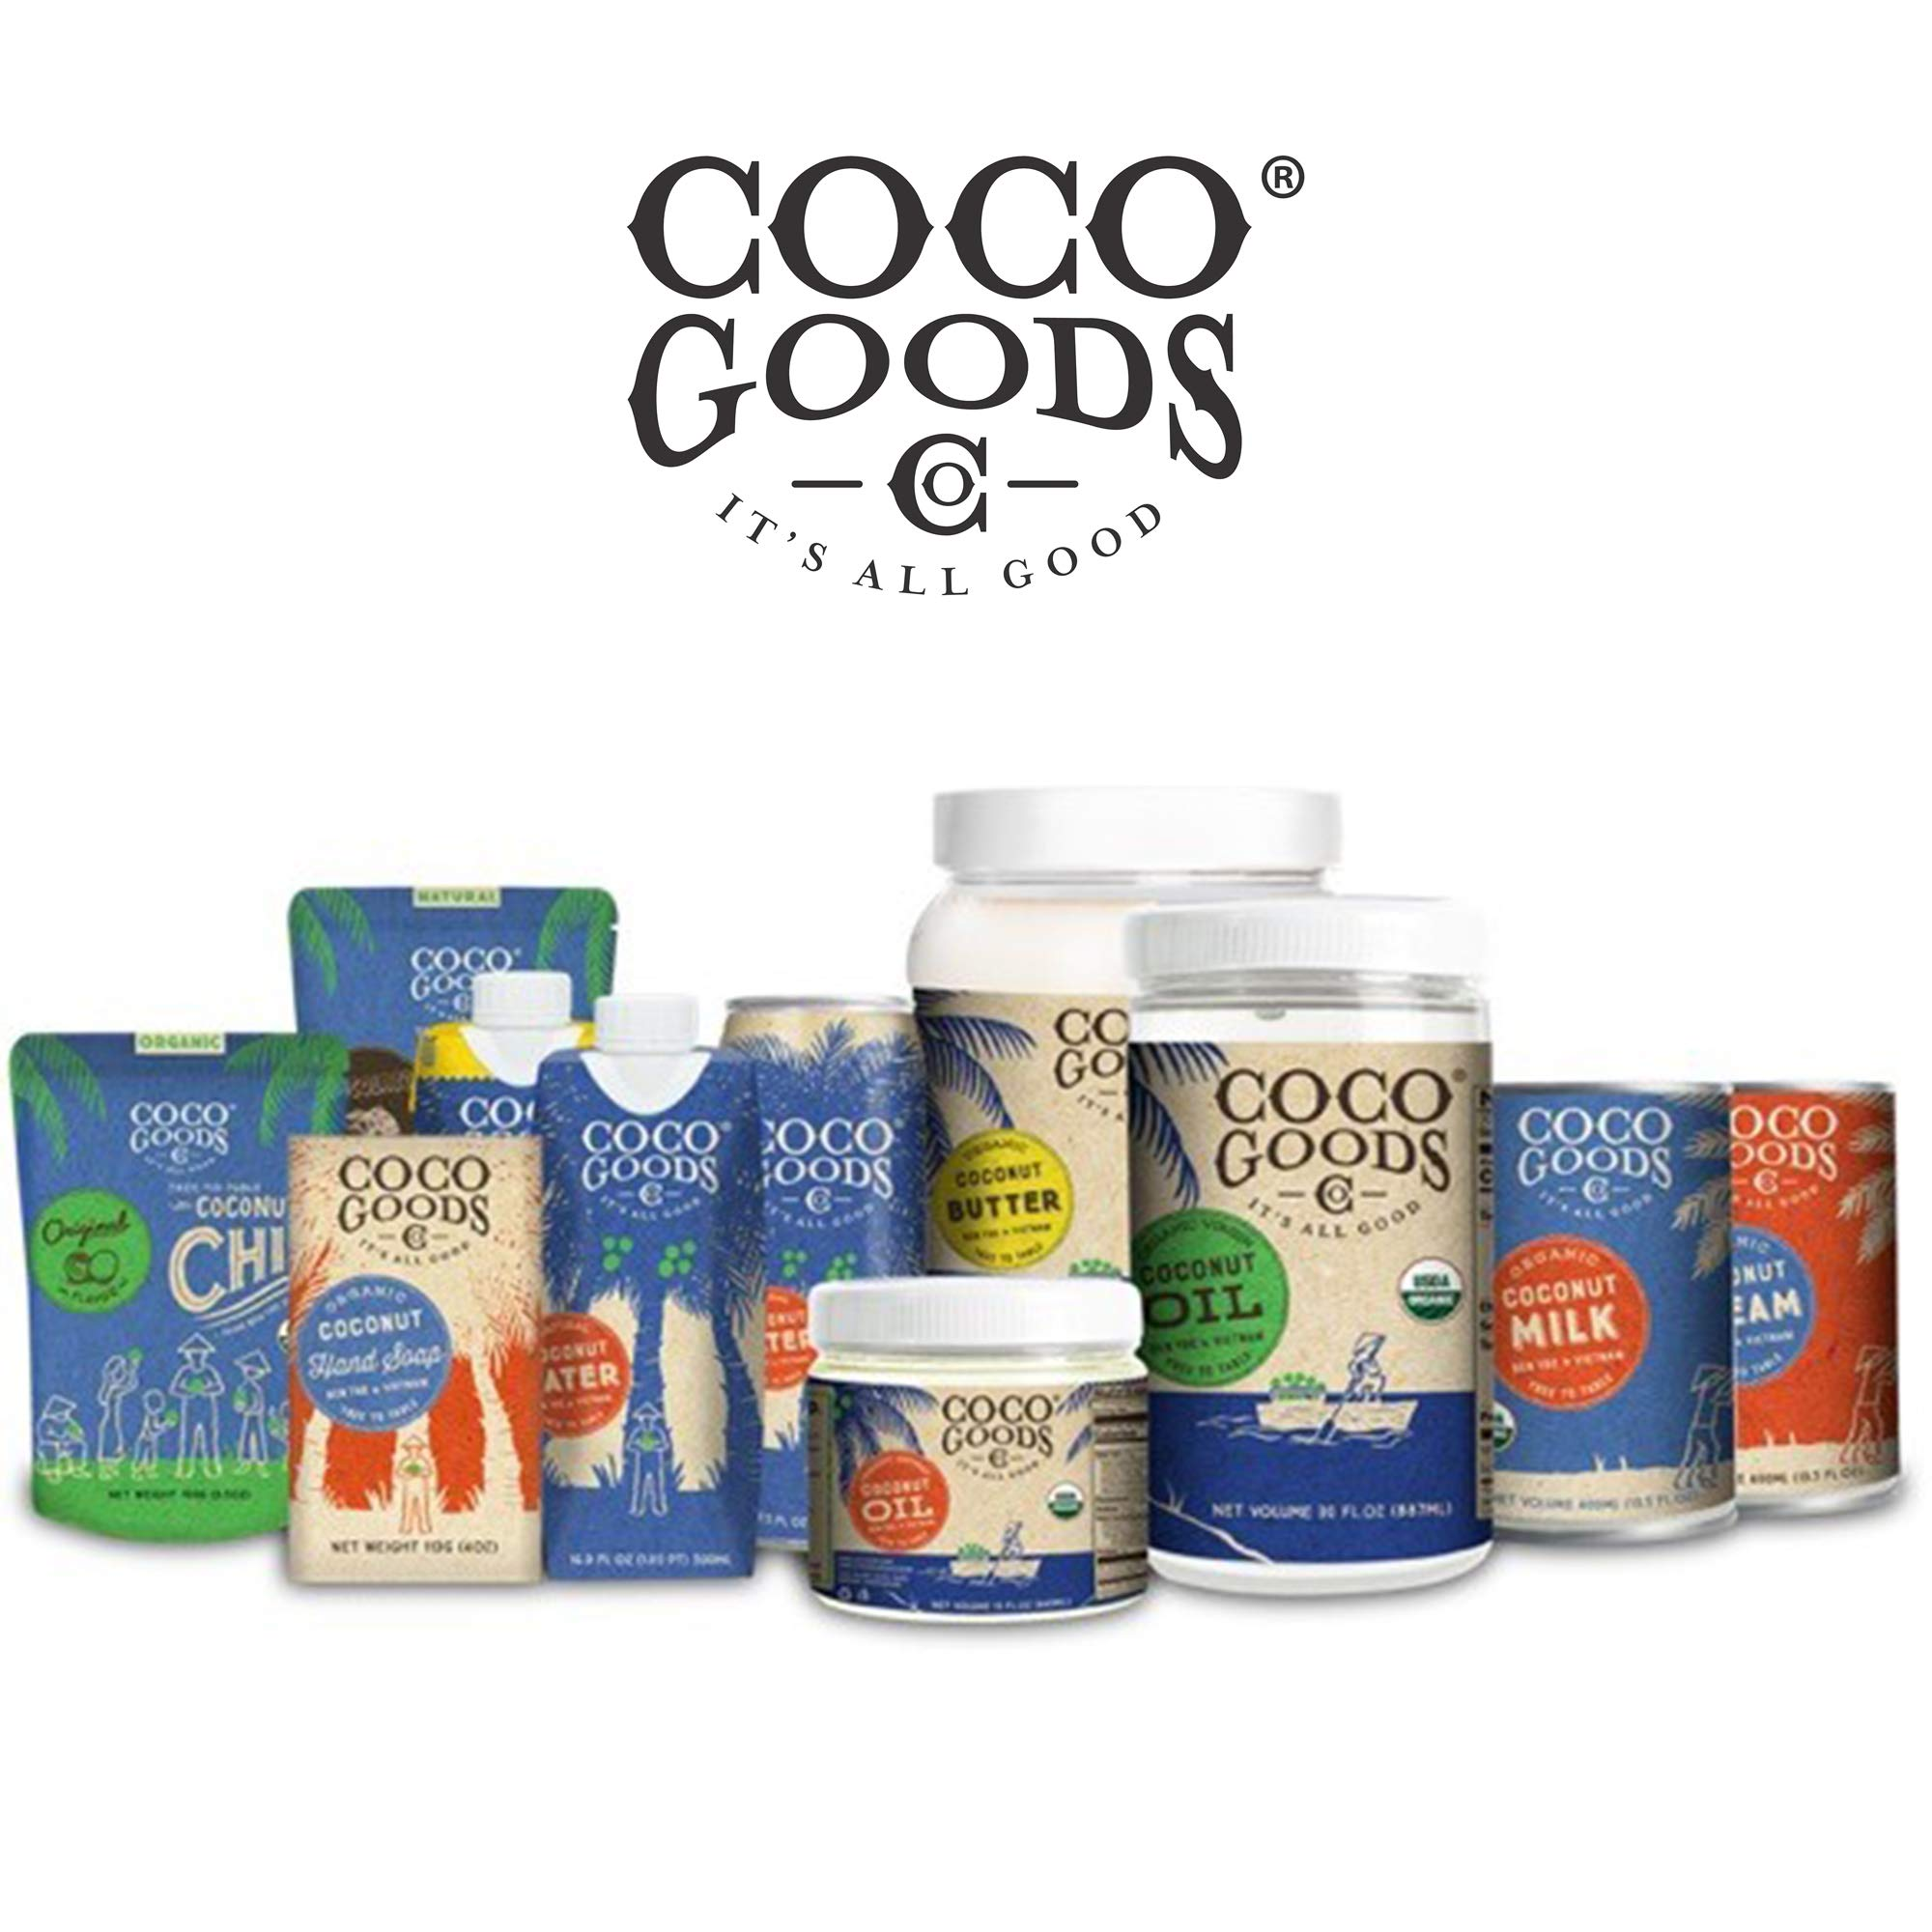 CocoGoods Co. Vietnam Single-Origin Organic Coconut Cream 13.5 oz - Gluten-free, Non-GMO, Vegan, & Dairy-free (Pack of 12) by COCOGOODSCO (Image #6)